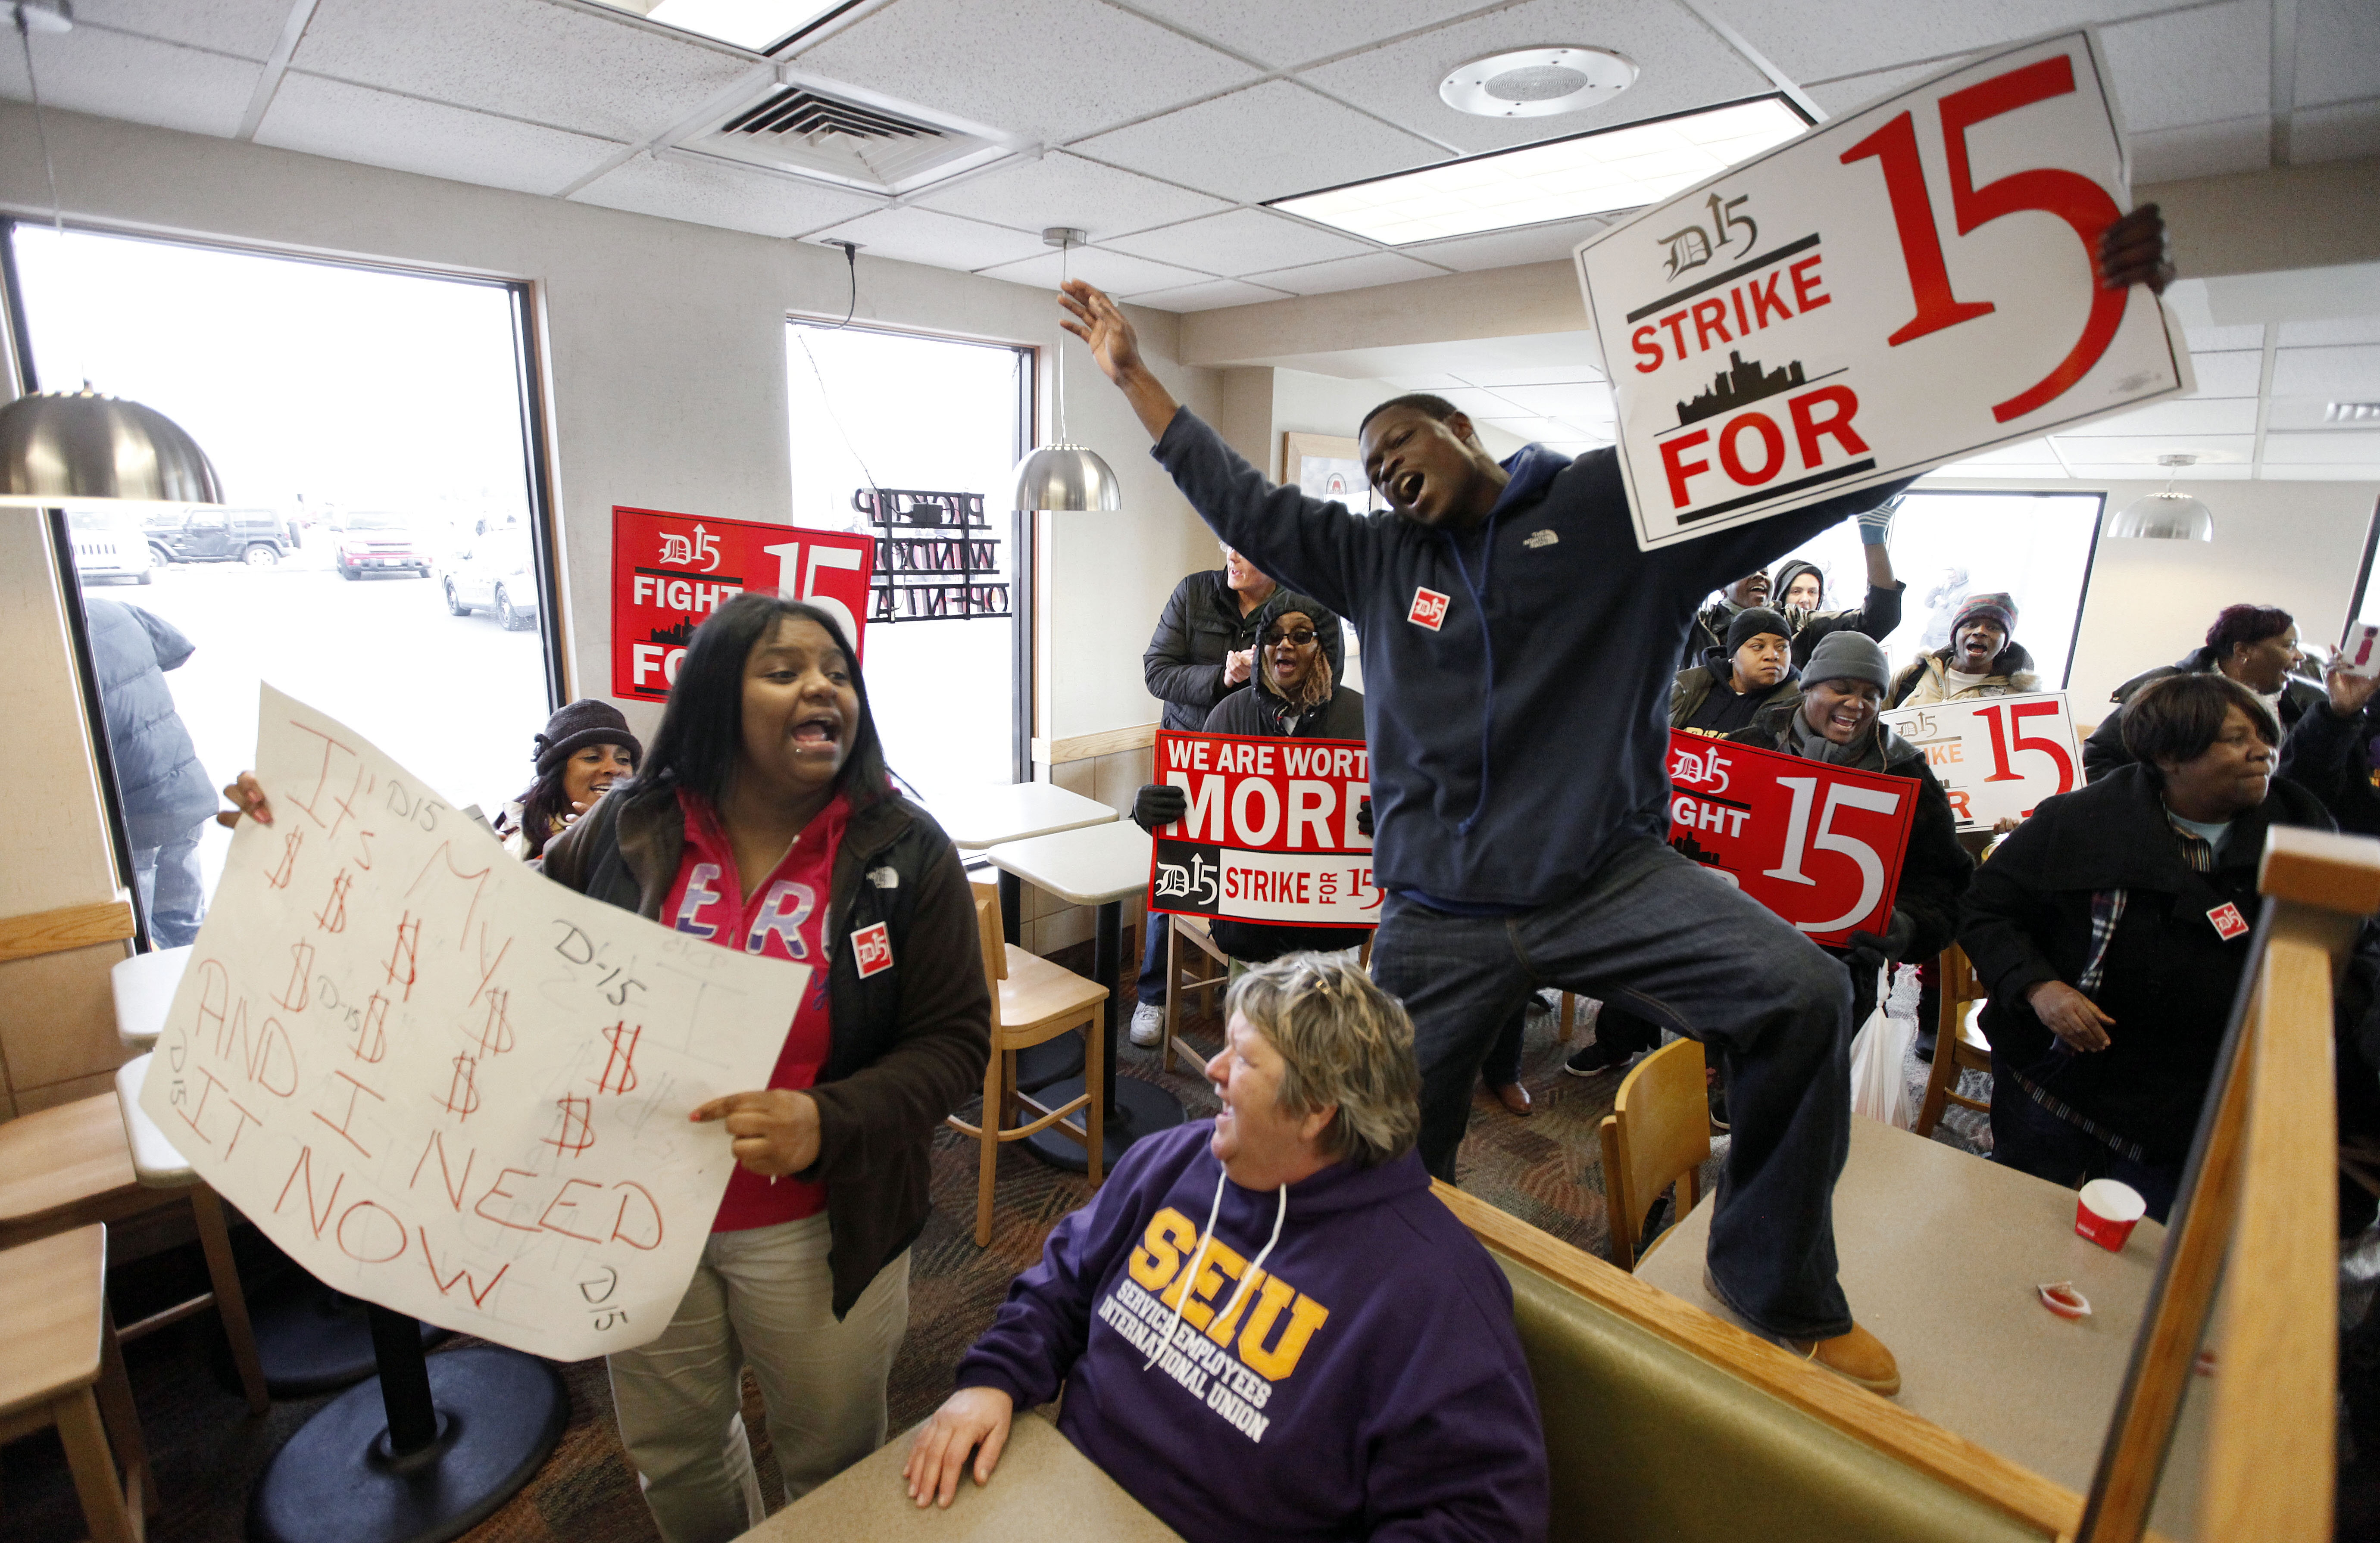 Protesters rally for better wages inside a Wendy's restaurant in Detroit on Thursday. Demonstrations were planned in 100 cities, including Buffalo.